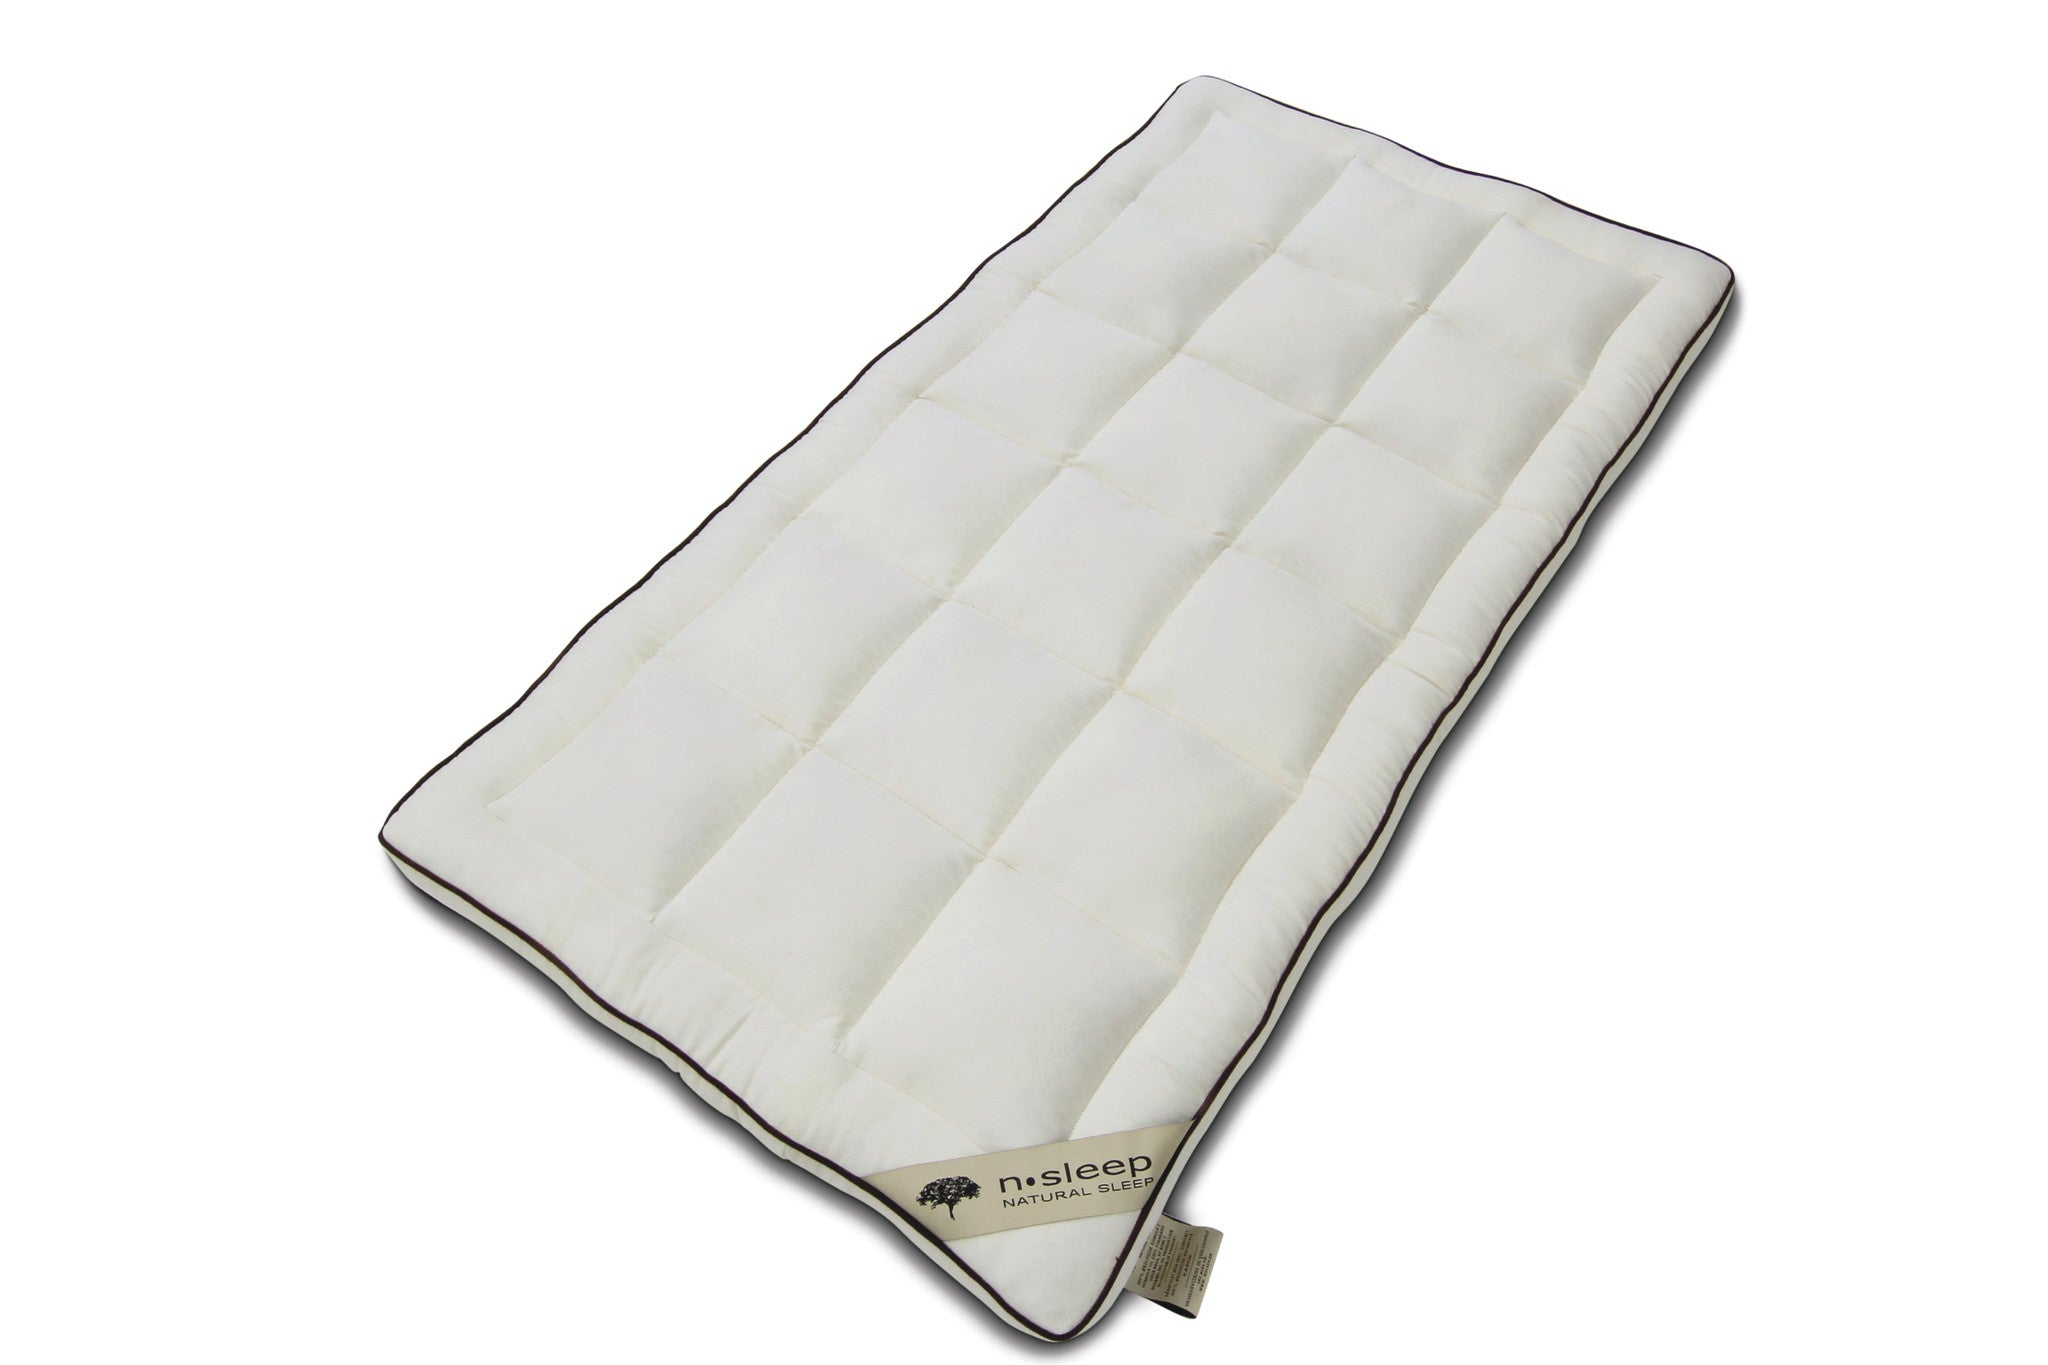 NATURAL SLEEP BABY MATTRESS